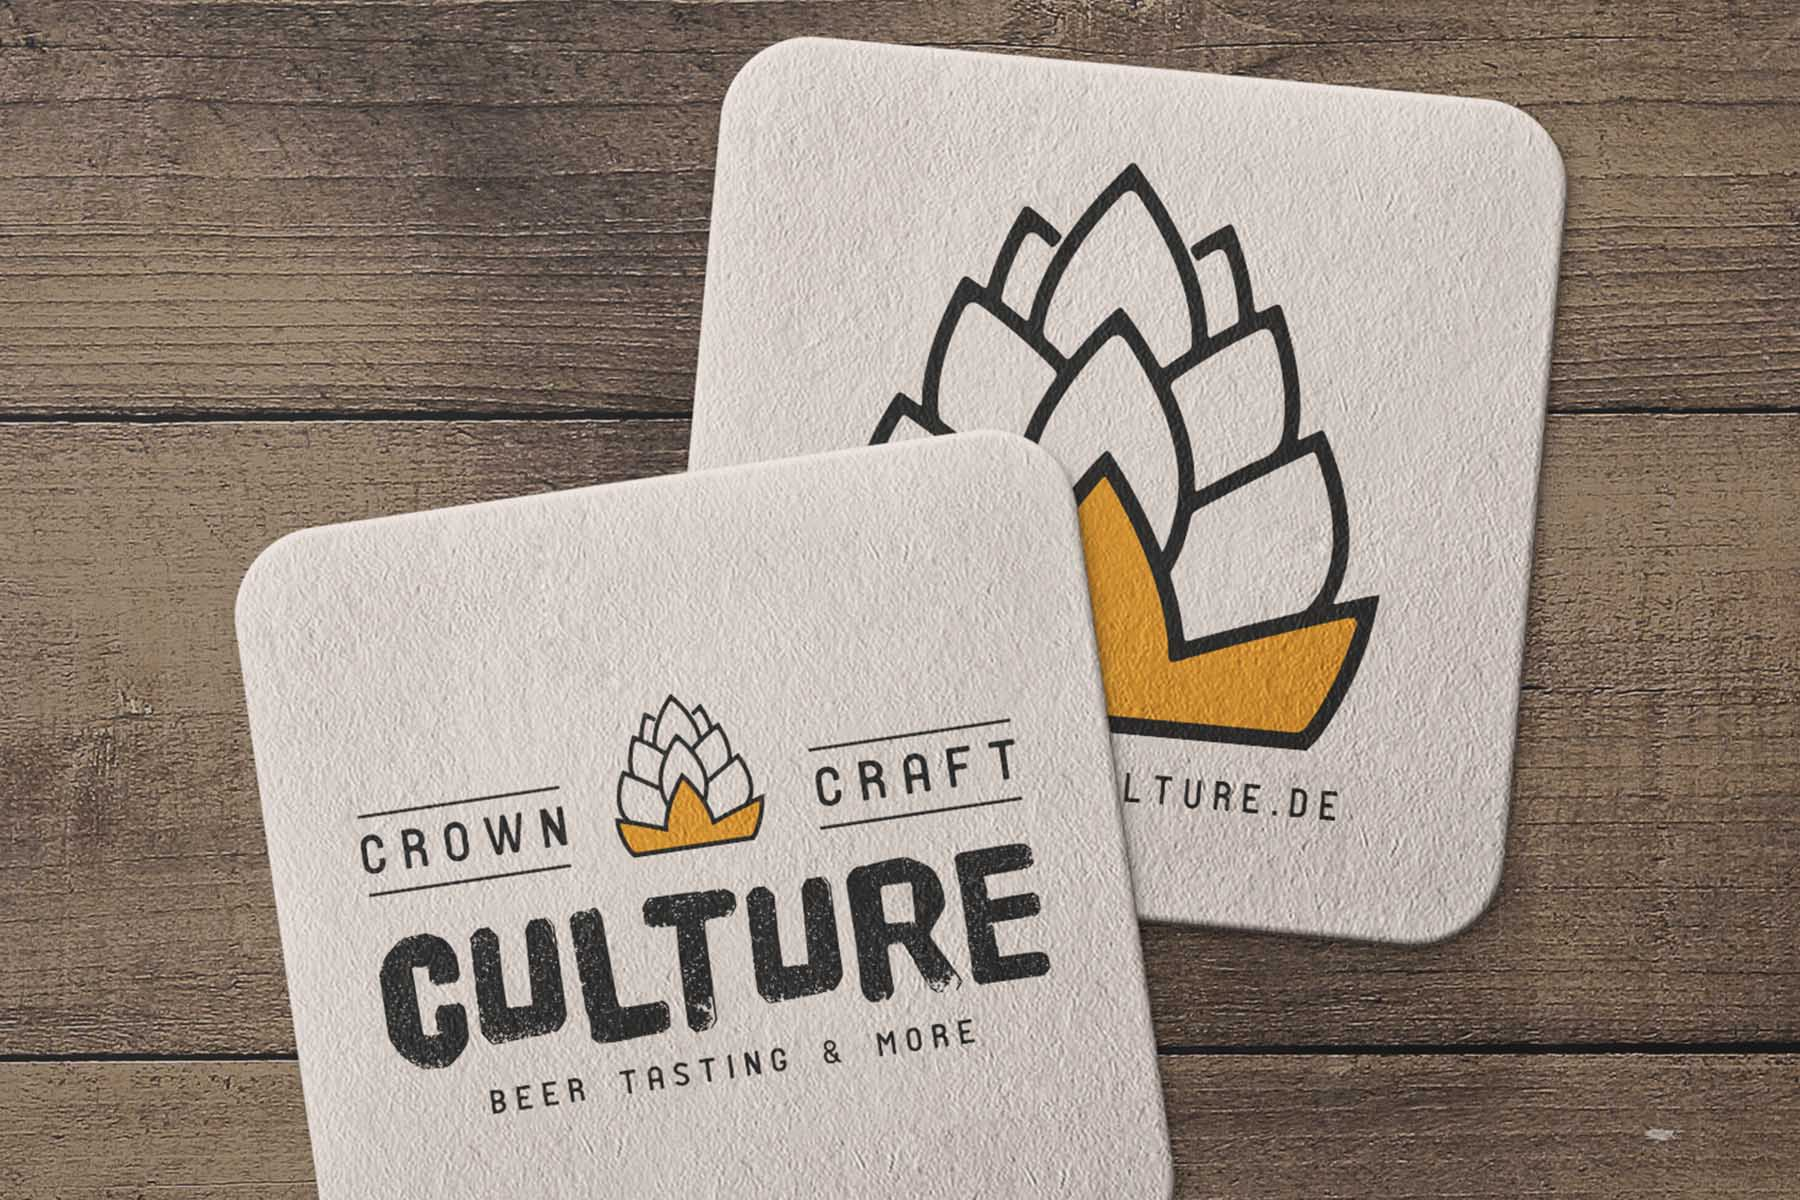 Crown Craft Culture | Logoentwicklung | Bierdeckel